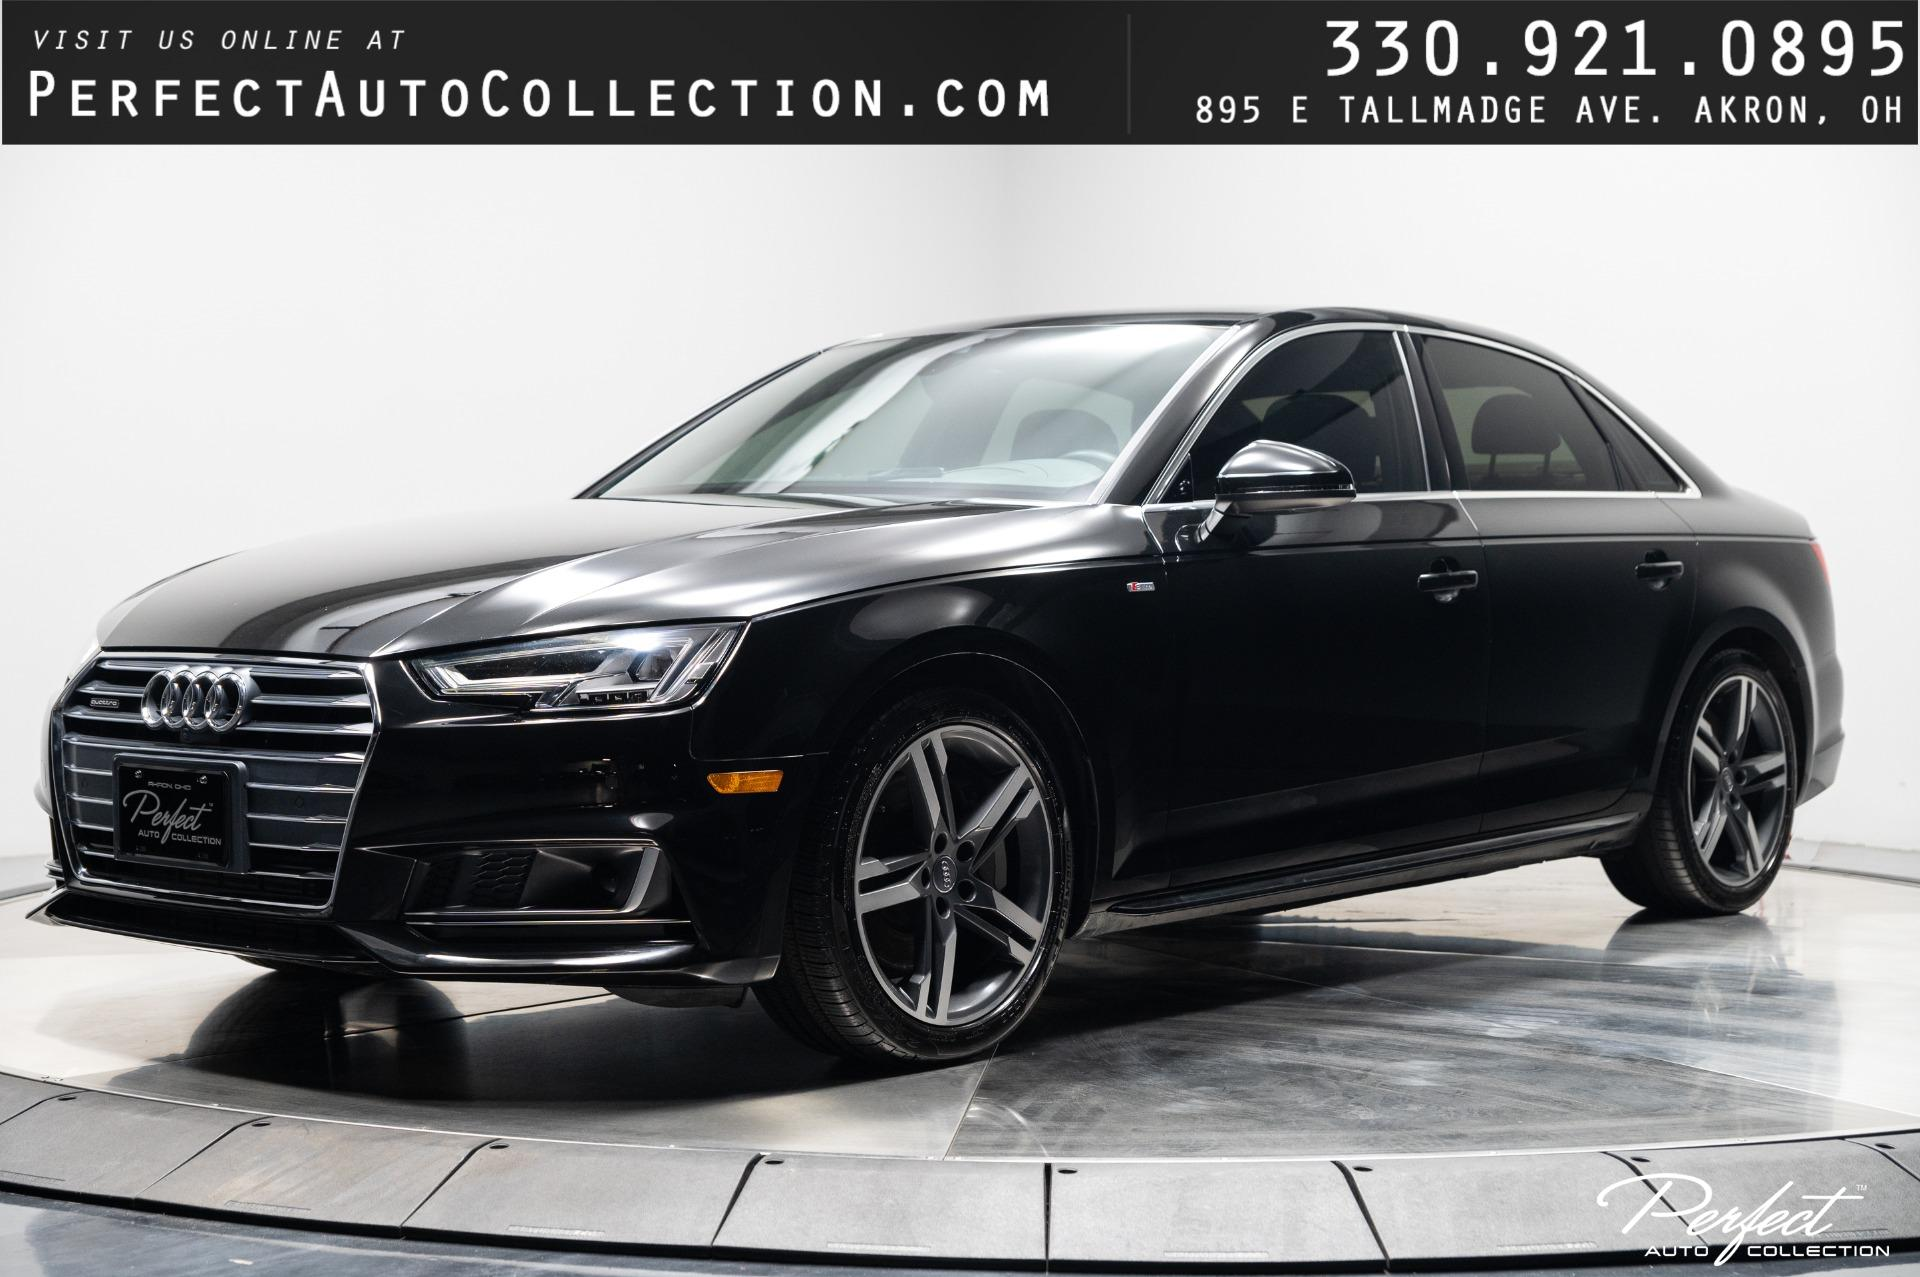 Used 2018 Audi A4 2.0T quattro Prestige for sale $31,895 at Perfect Auto Collection in Akron OH 44310 1